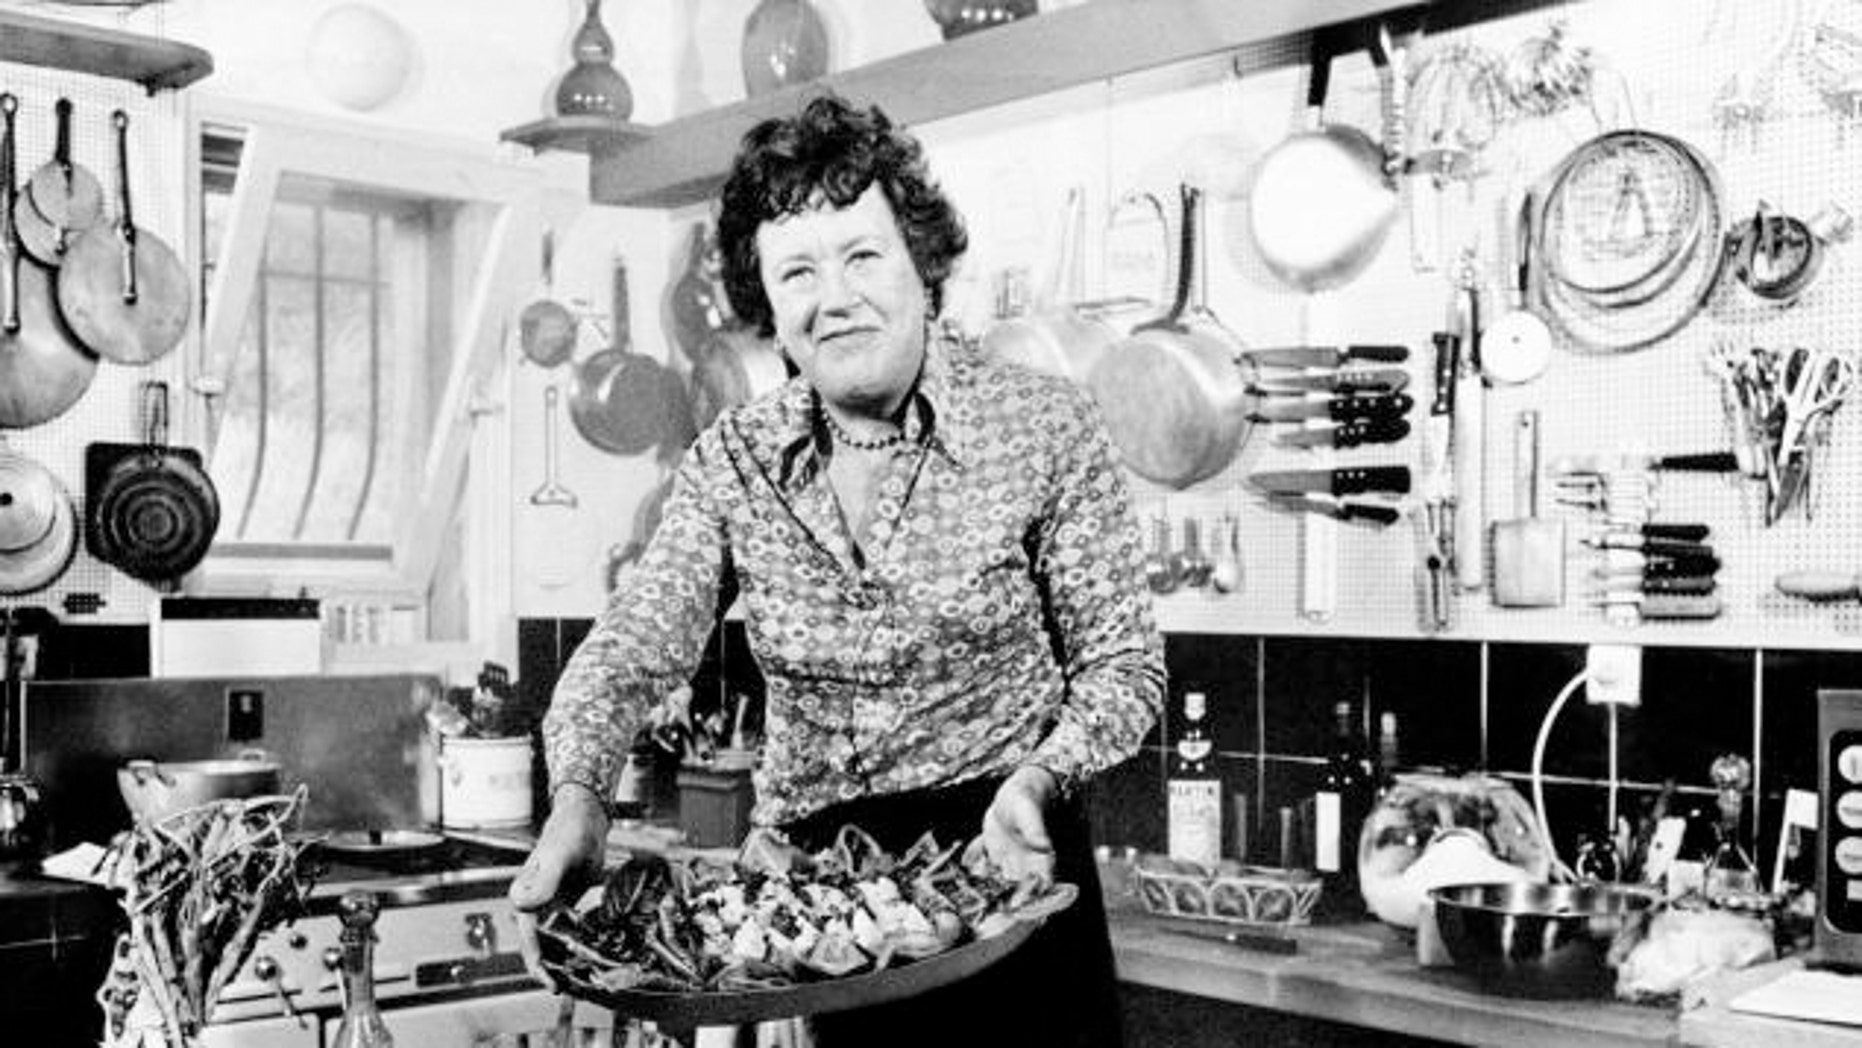 Julia Child was enrolled at Le Cordon Bleu Paris fron 1949 to 1950 with finance from the G.I Bill.